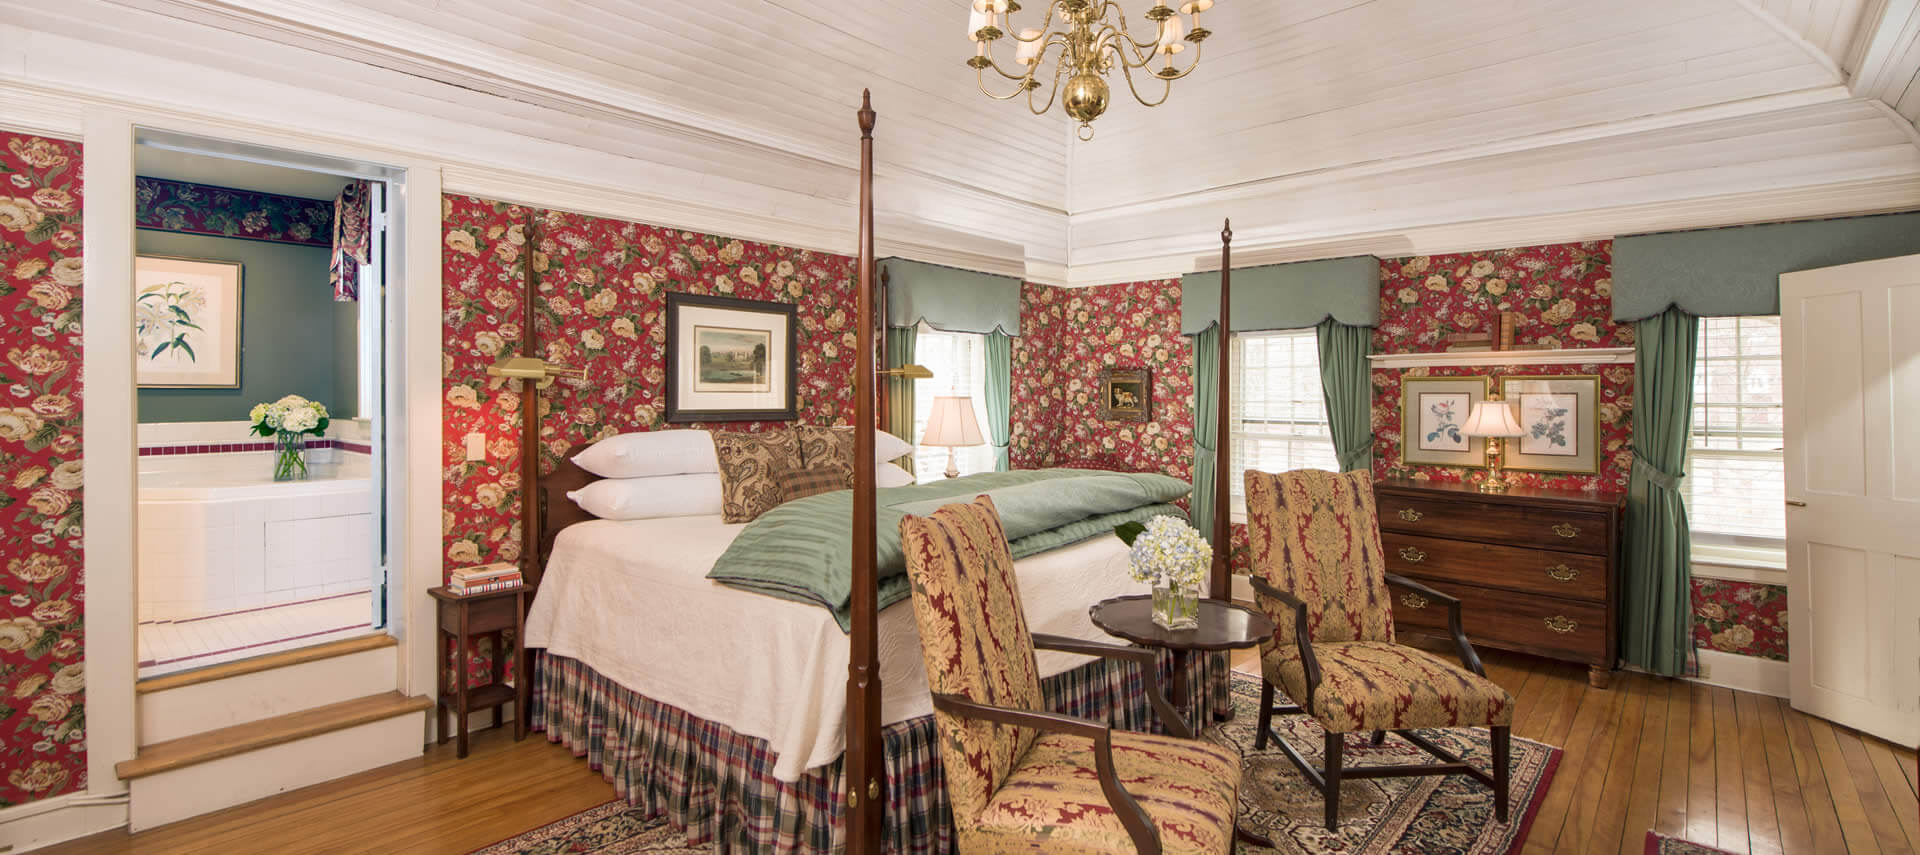 Guestroom with red chintz wallpaper, a four-poster bed, two chairs and windows with green drapes.